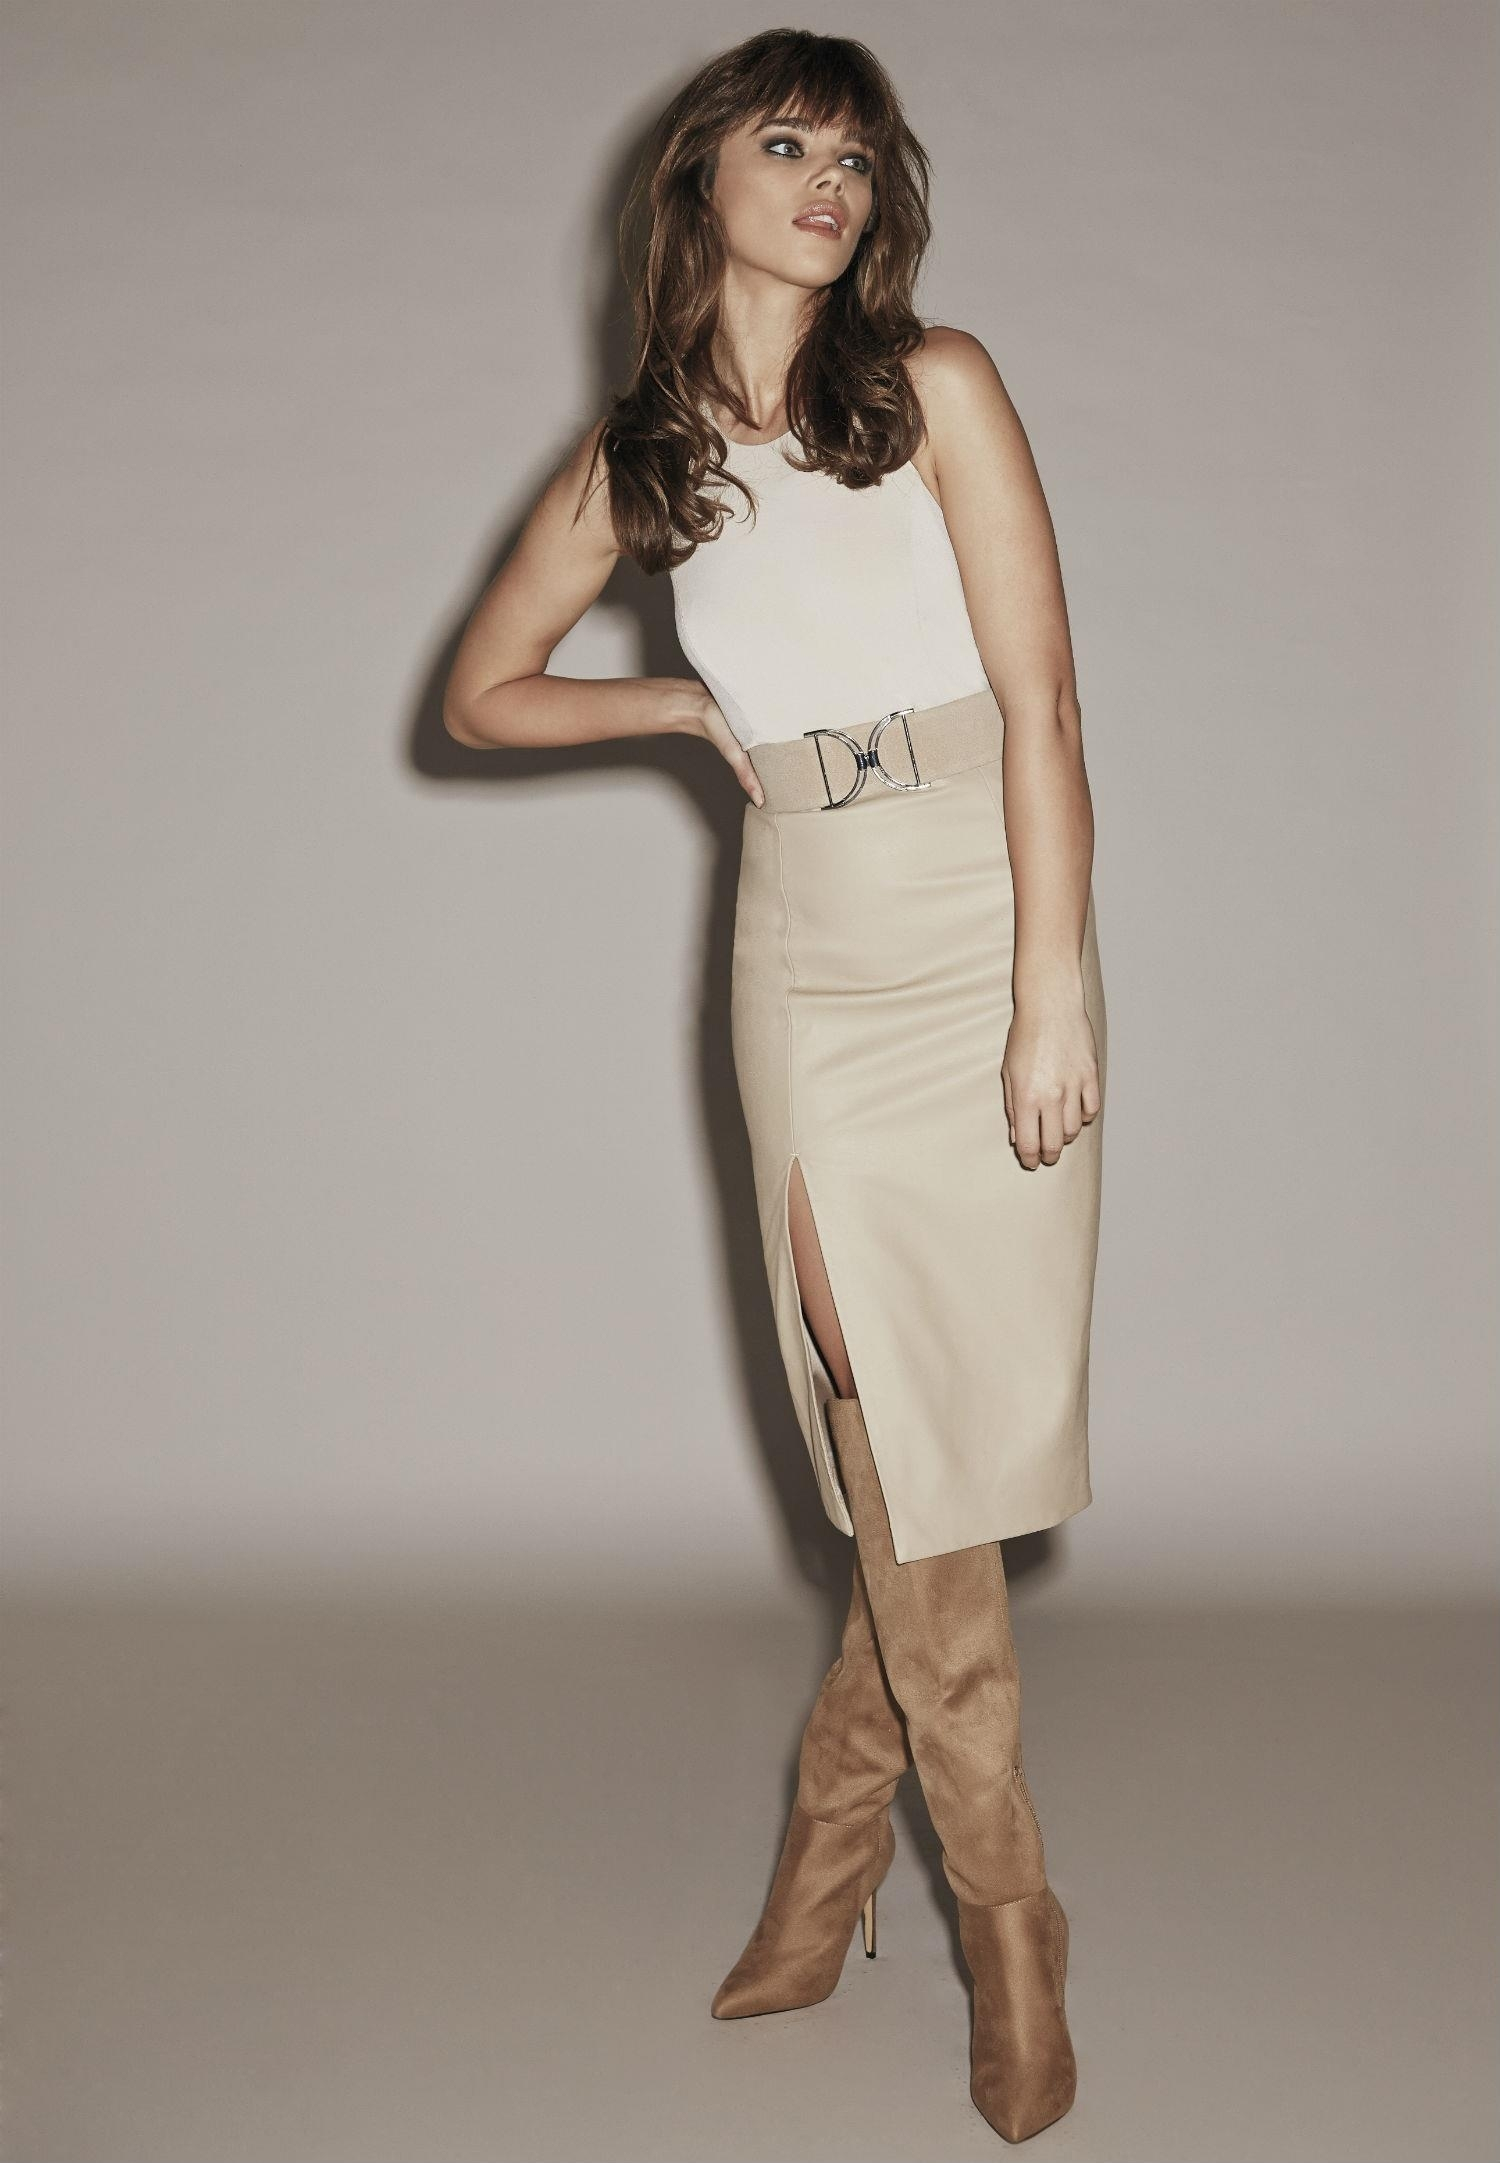 Jena Goldsack photoshoot for Bardot Collection